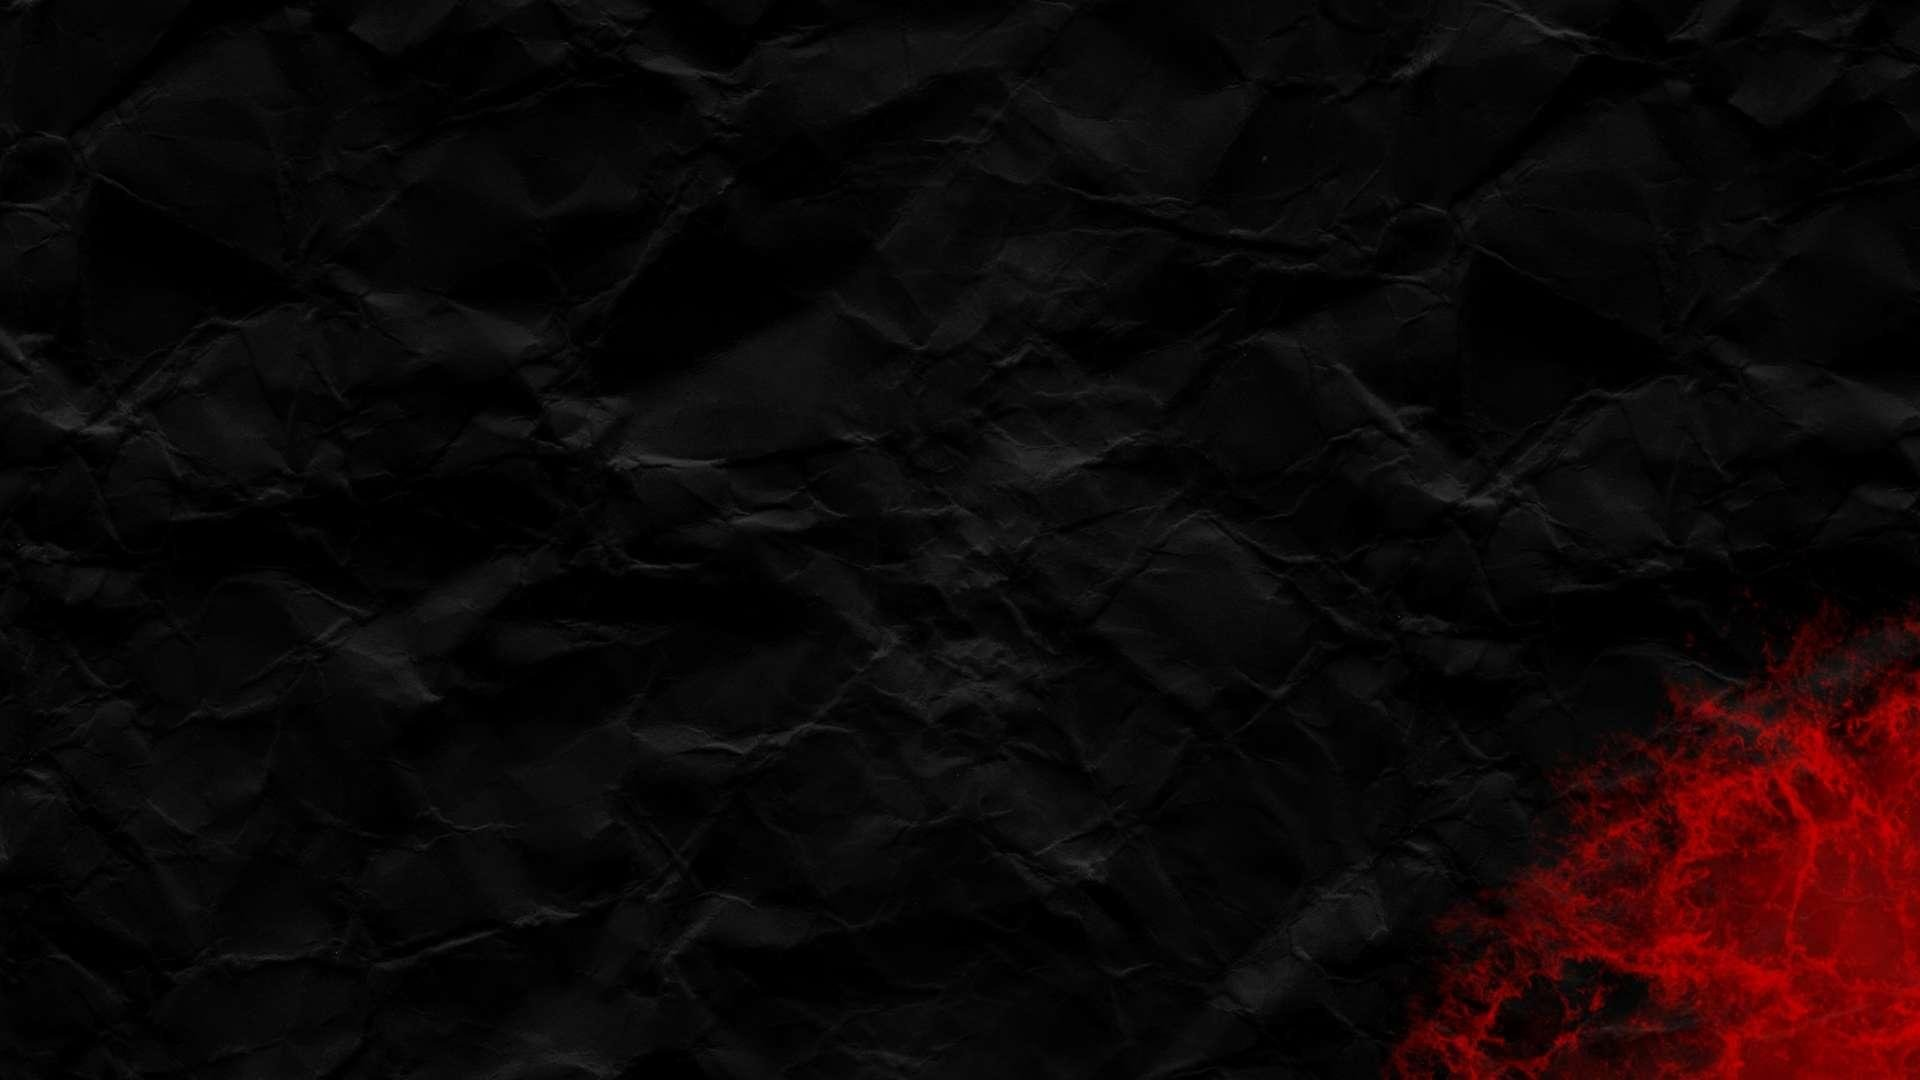 Download Wallpaper Red, Black, Abstract Full HD 1080p HD .